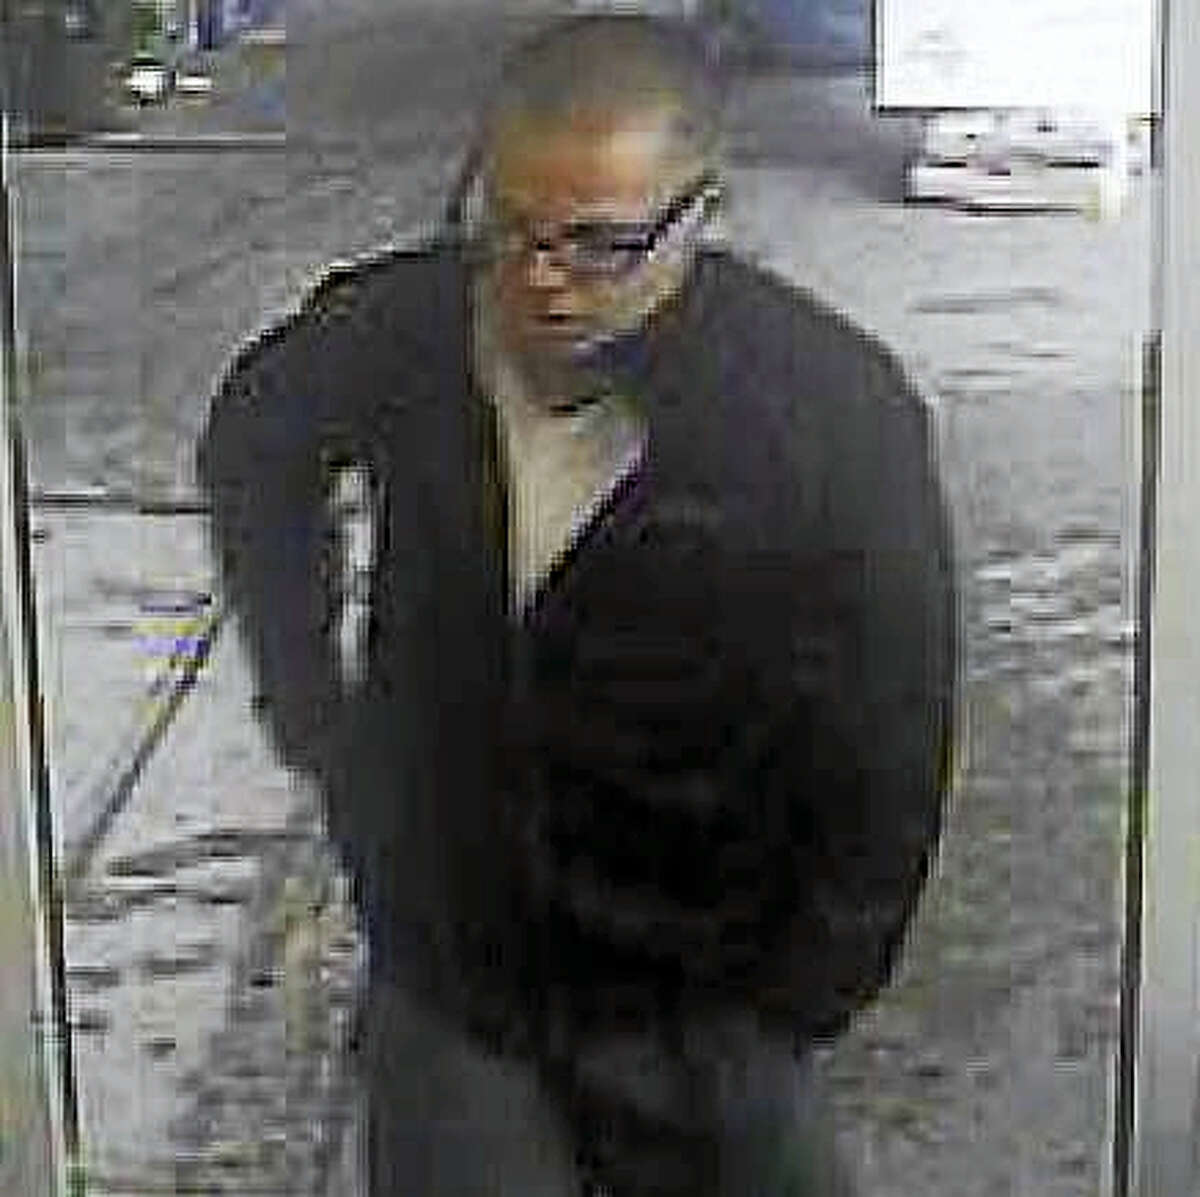 (Photo courtesy of the Clinton Police Department)Police are asking the public for help finding a man who allegedly stole hundreds of dollars' worth of products from the Clinton Stop & Shop. The man reportedly fled in a dark-colored sedan.